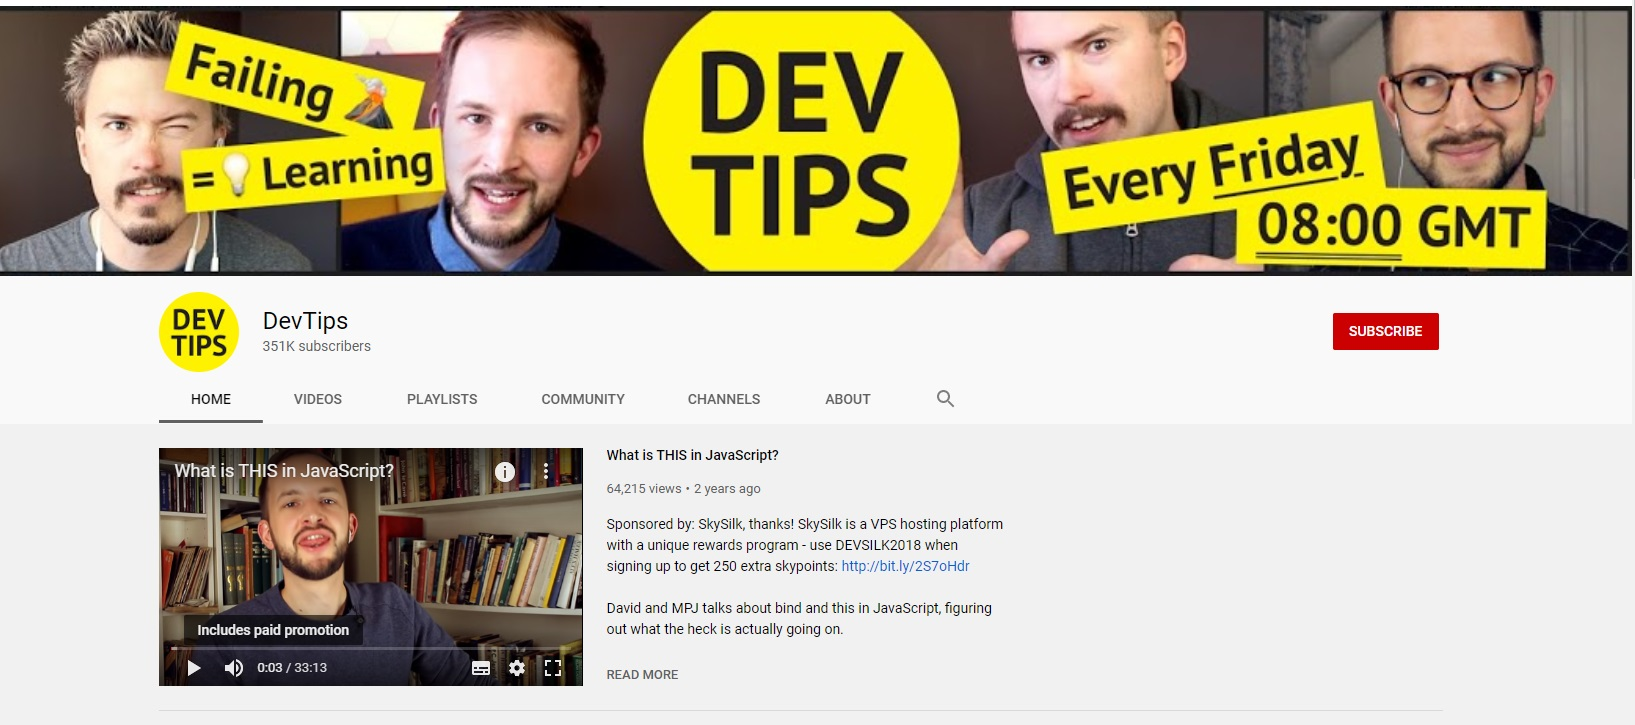 youtube coding channels devtips